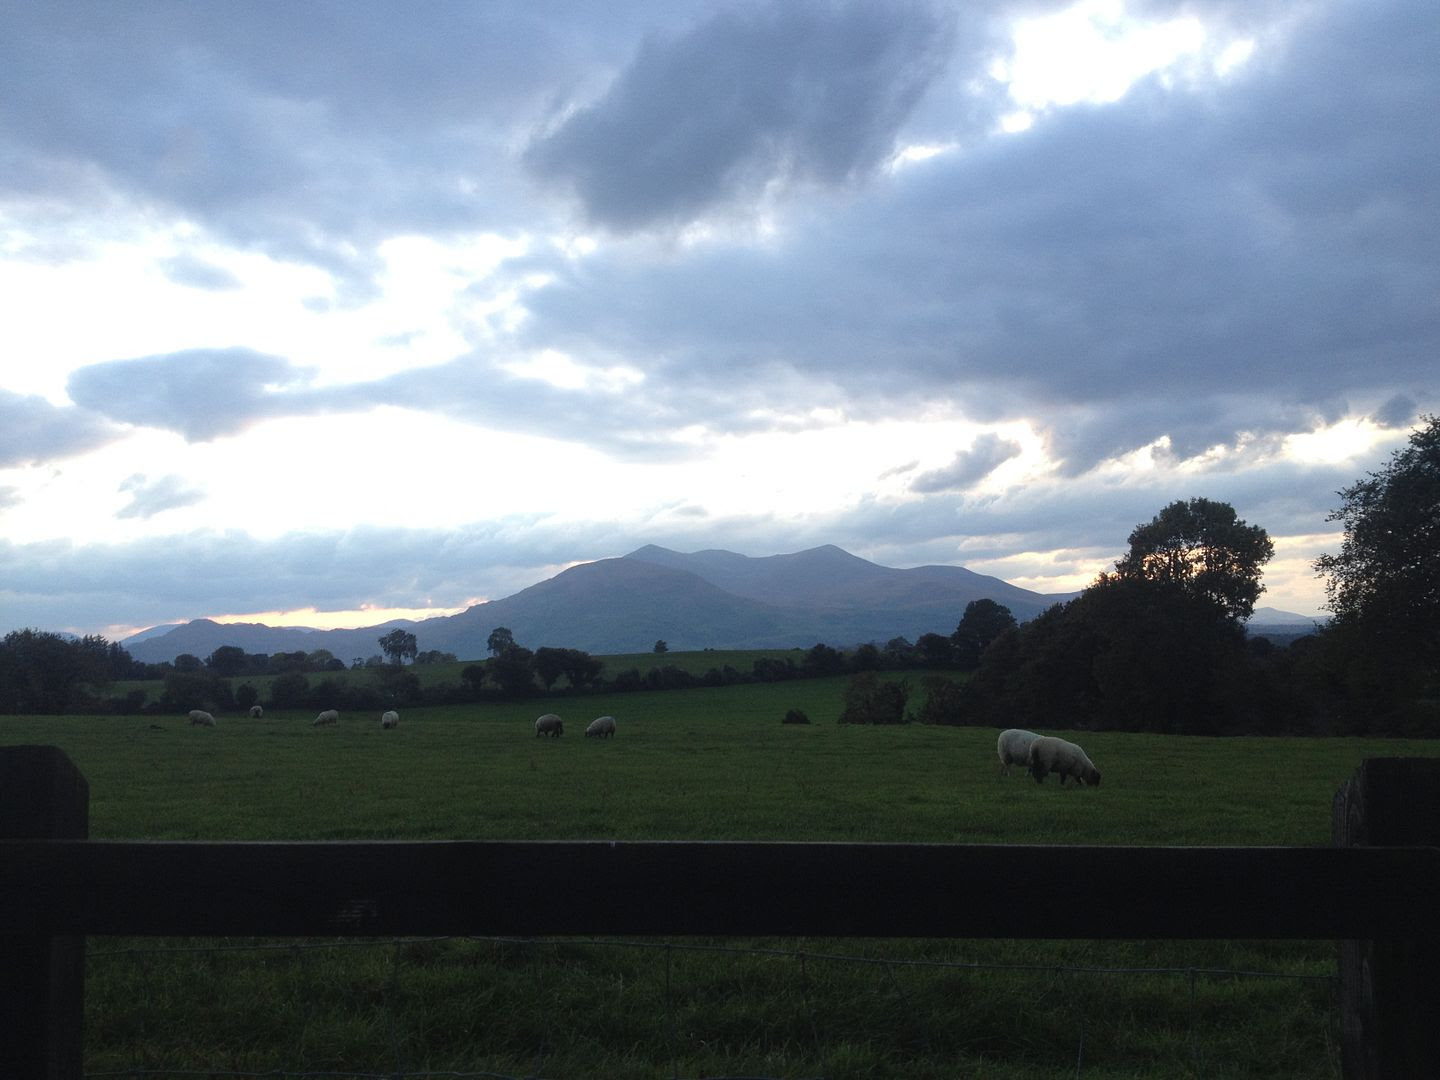 Killarney, Ireland photo 2015-10-14 18.33.06_zpsbbpnw1ry.jpg